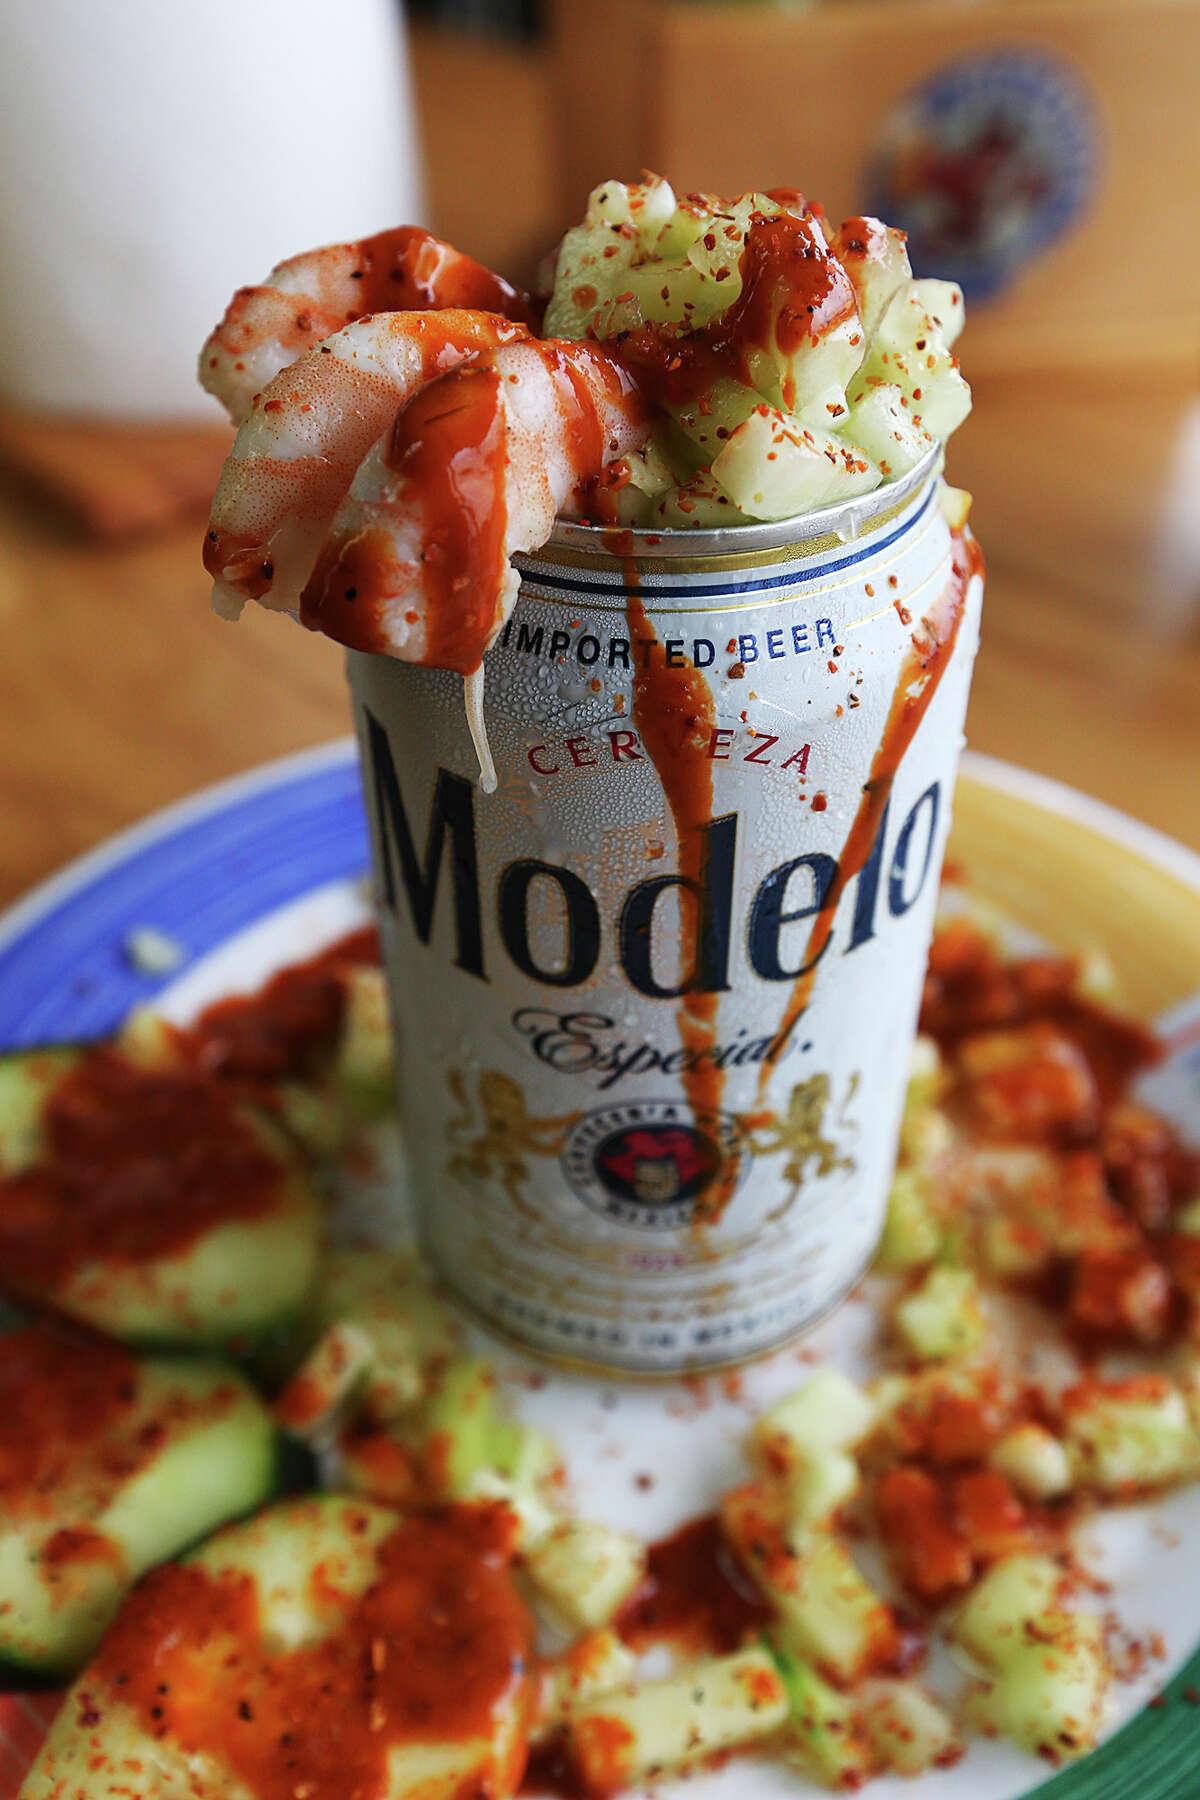 1. Cerveza Preparada  Like a michelada, Las Islas Marias' preparada has hot sauce. But fear not, Buzzfeed, washing down spicy shrimp and cucumbers with a cold one is something you'll want to write home about.